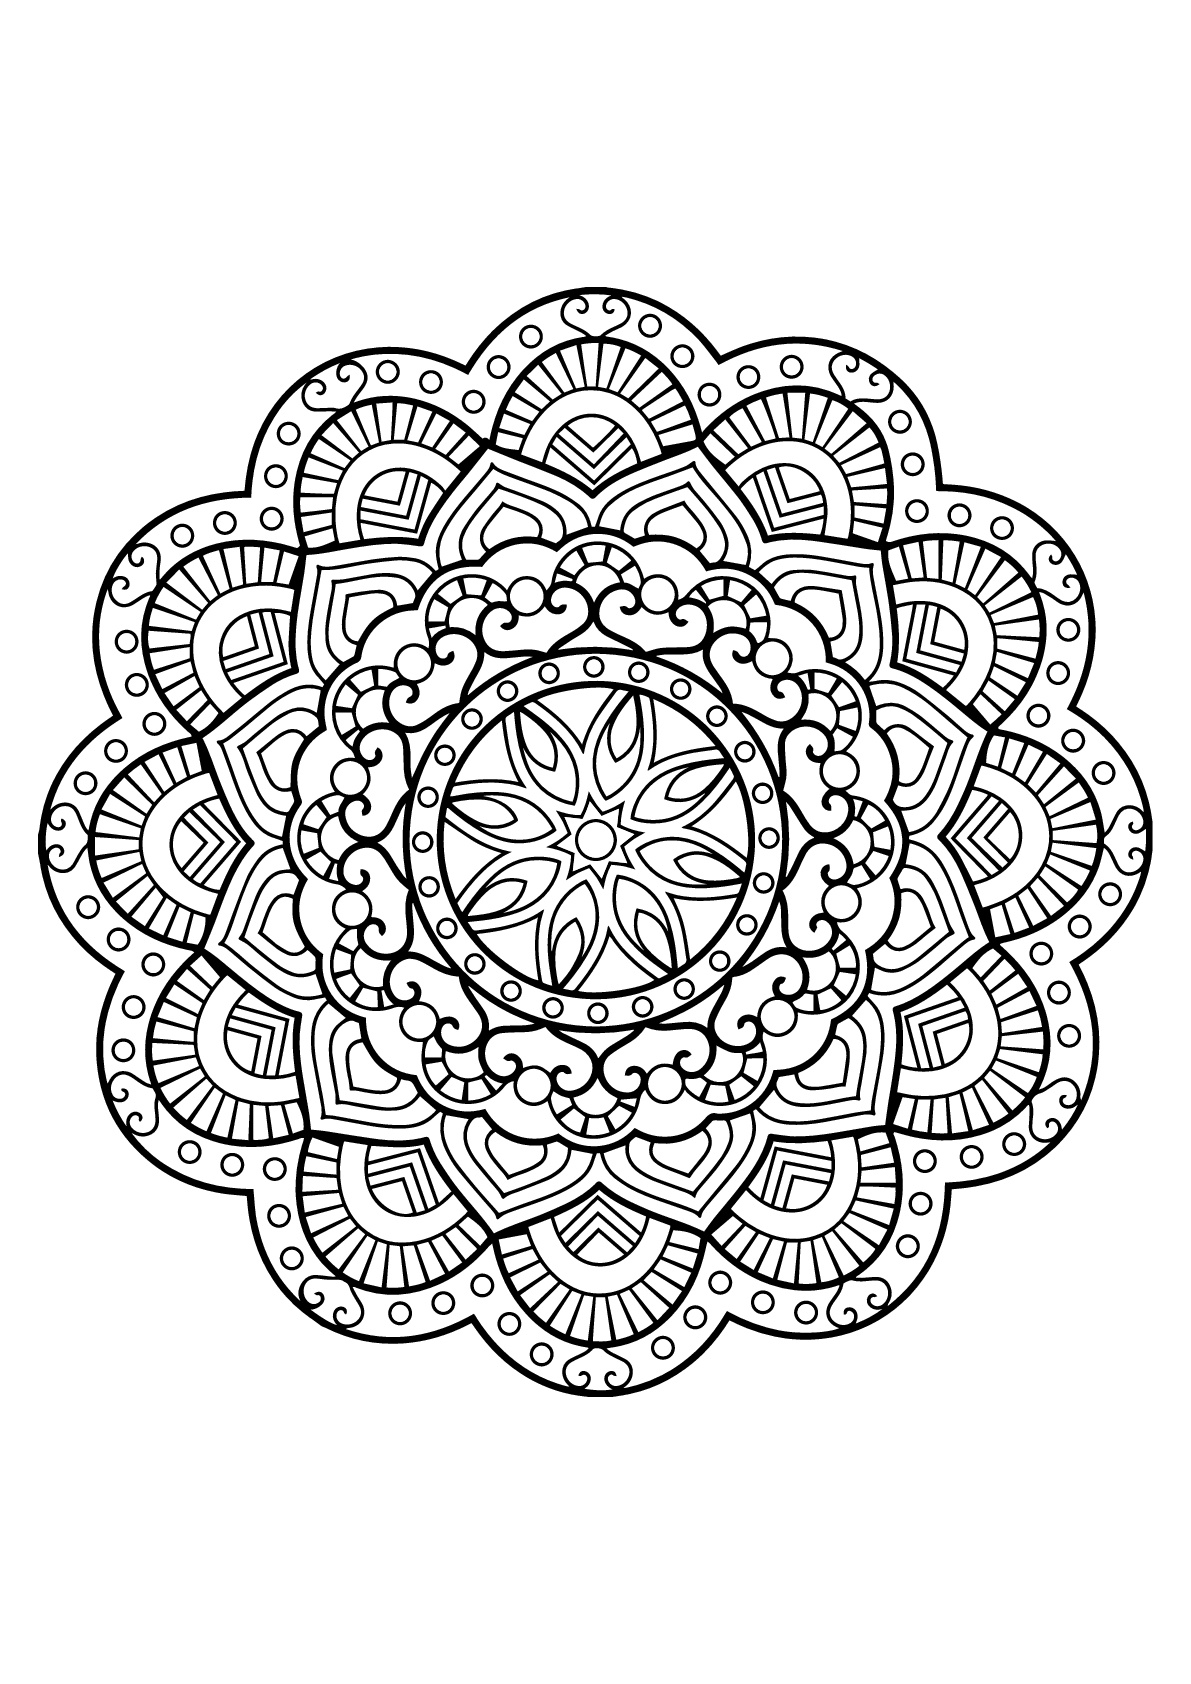 Mandala from Free Coloring book for adults